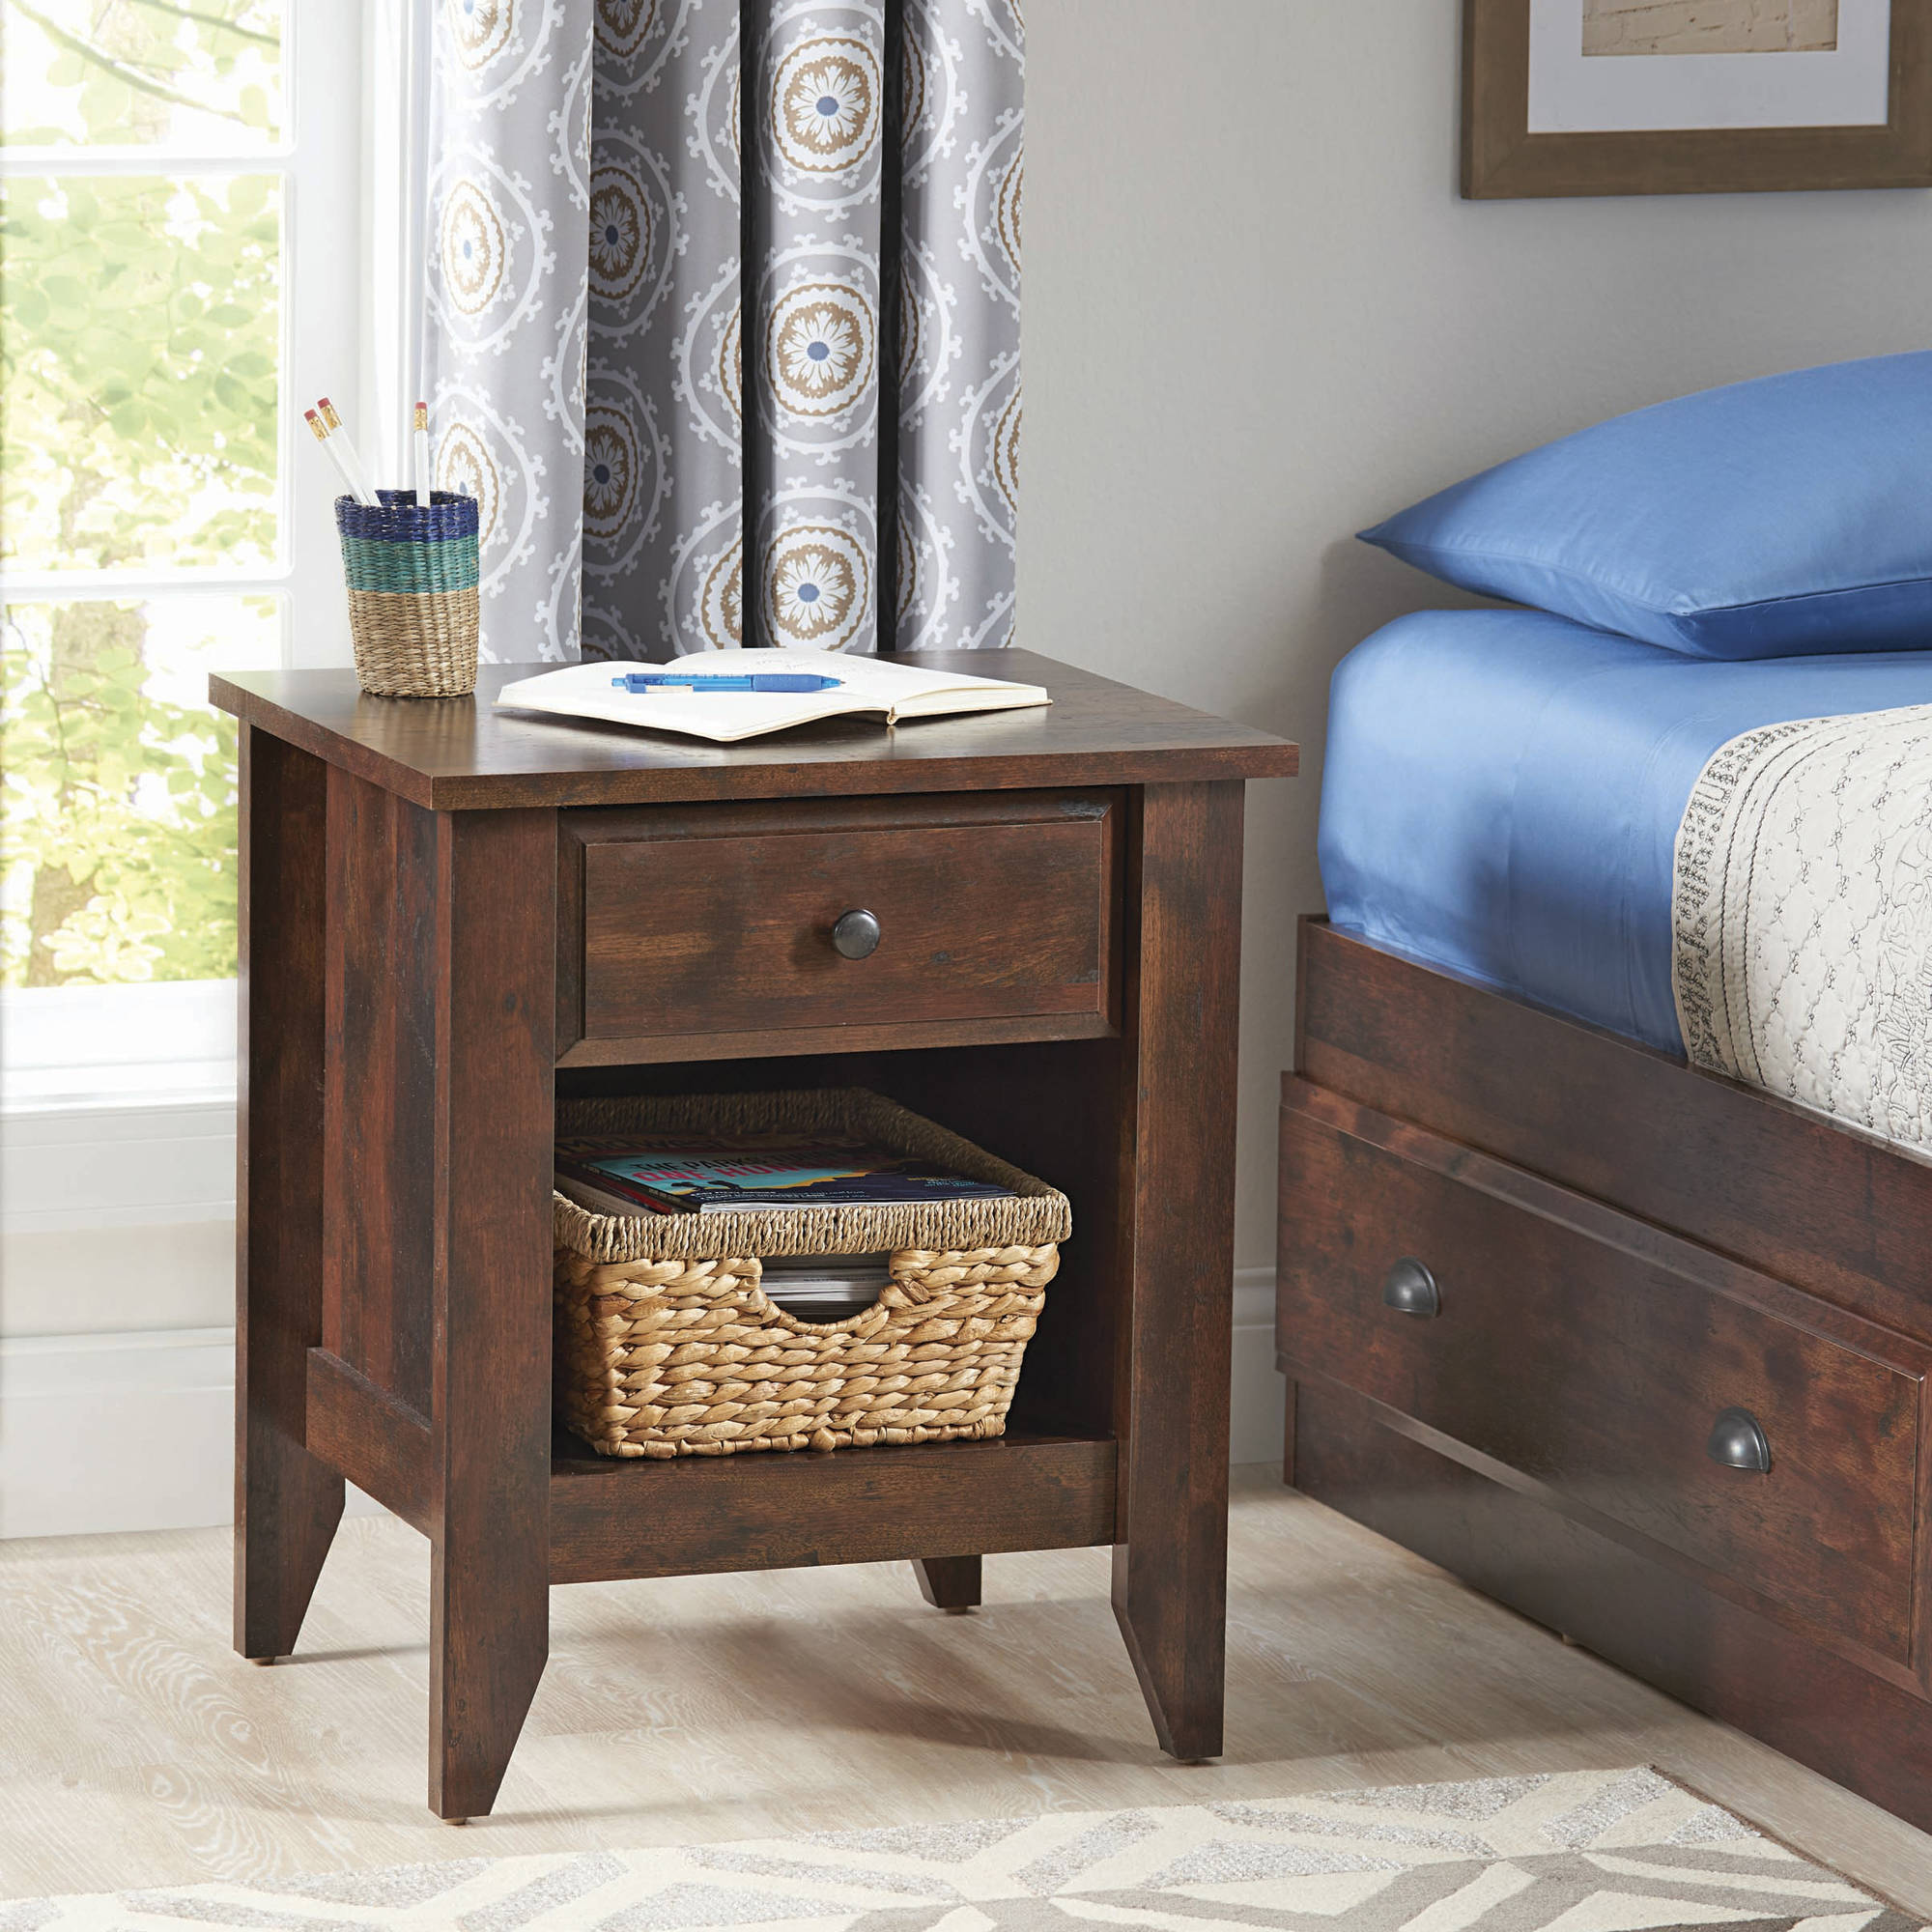 spelndid better home and gardens cookbook. Better Homes and Gardens Leighton Night Stand  Rustic Cherry Finish Collection Walmart com